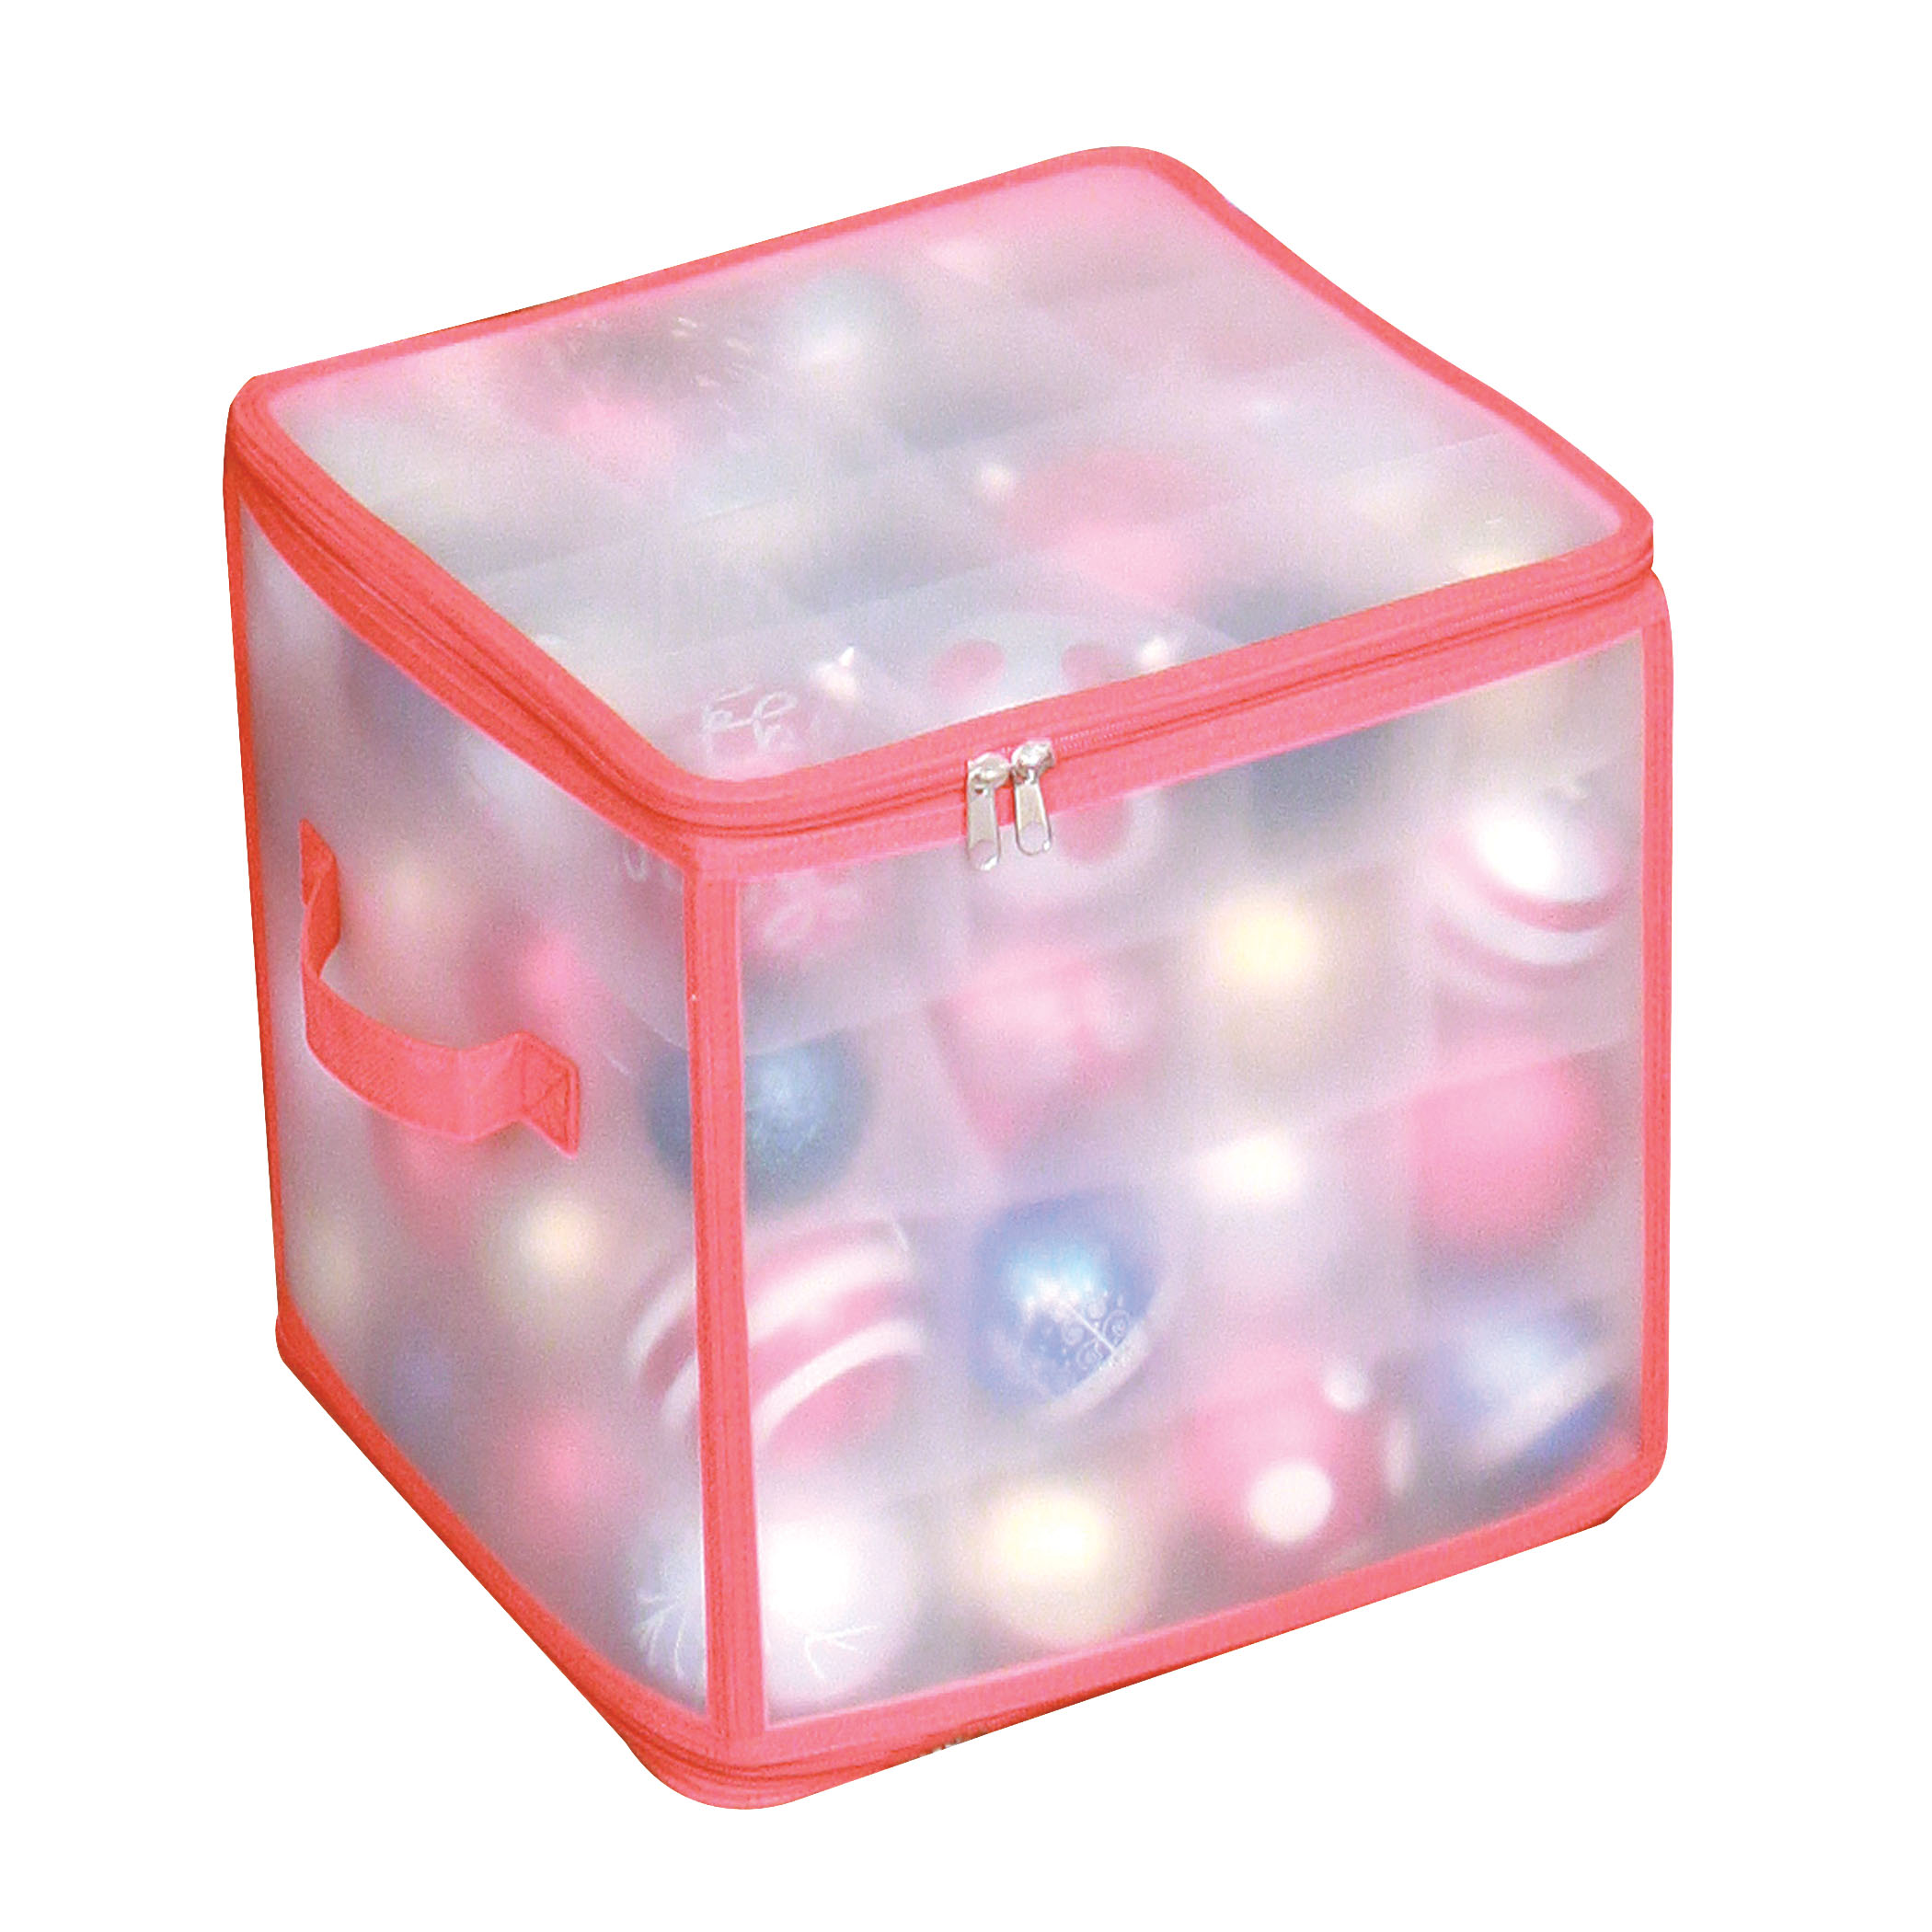 HOLIDAY/FROSTED 64 Cell Ornament Chest